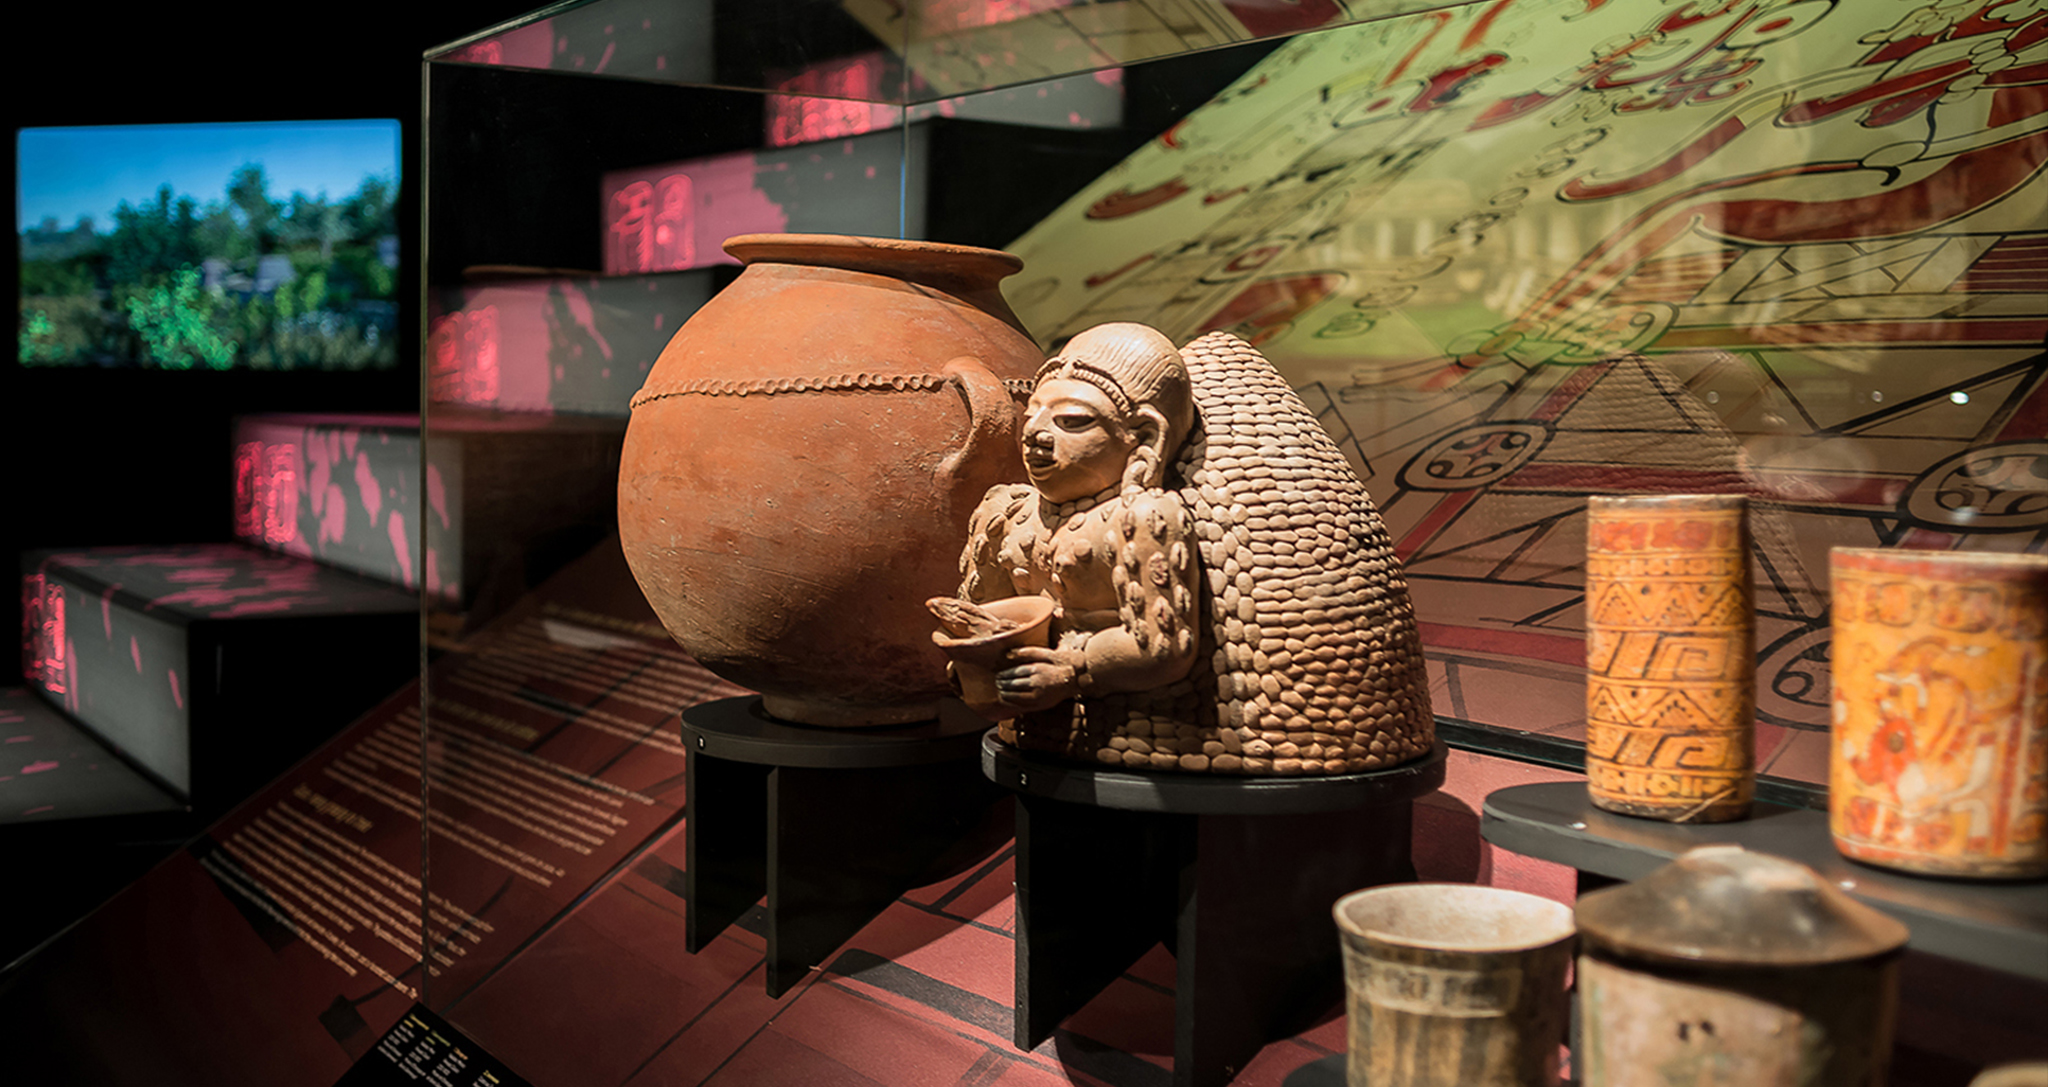 Temporary travelling exhibition of MAYAS, The enigma of the lost cities, at MARQ, the Provincial Archaeological Museum of Alicante, museum design and museography by Rocamora Design and Architecture, Elche, Alicante, Spain